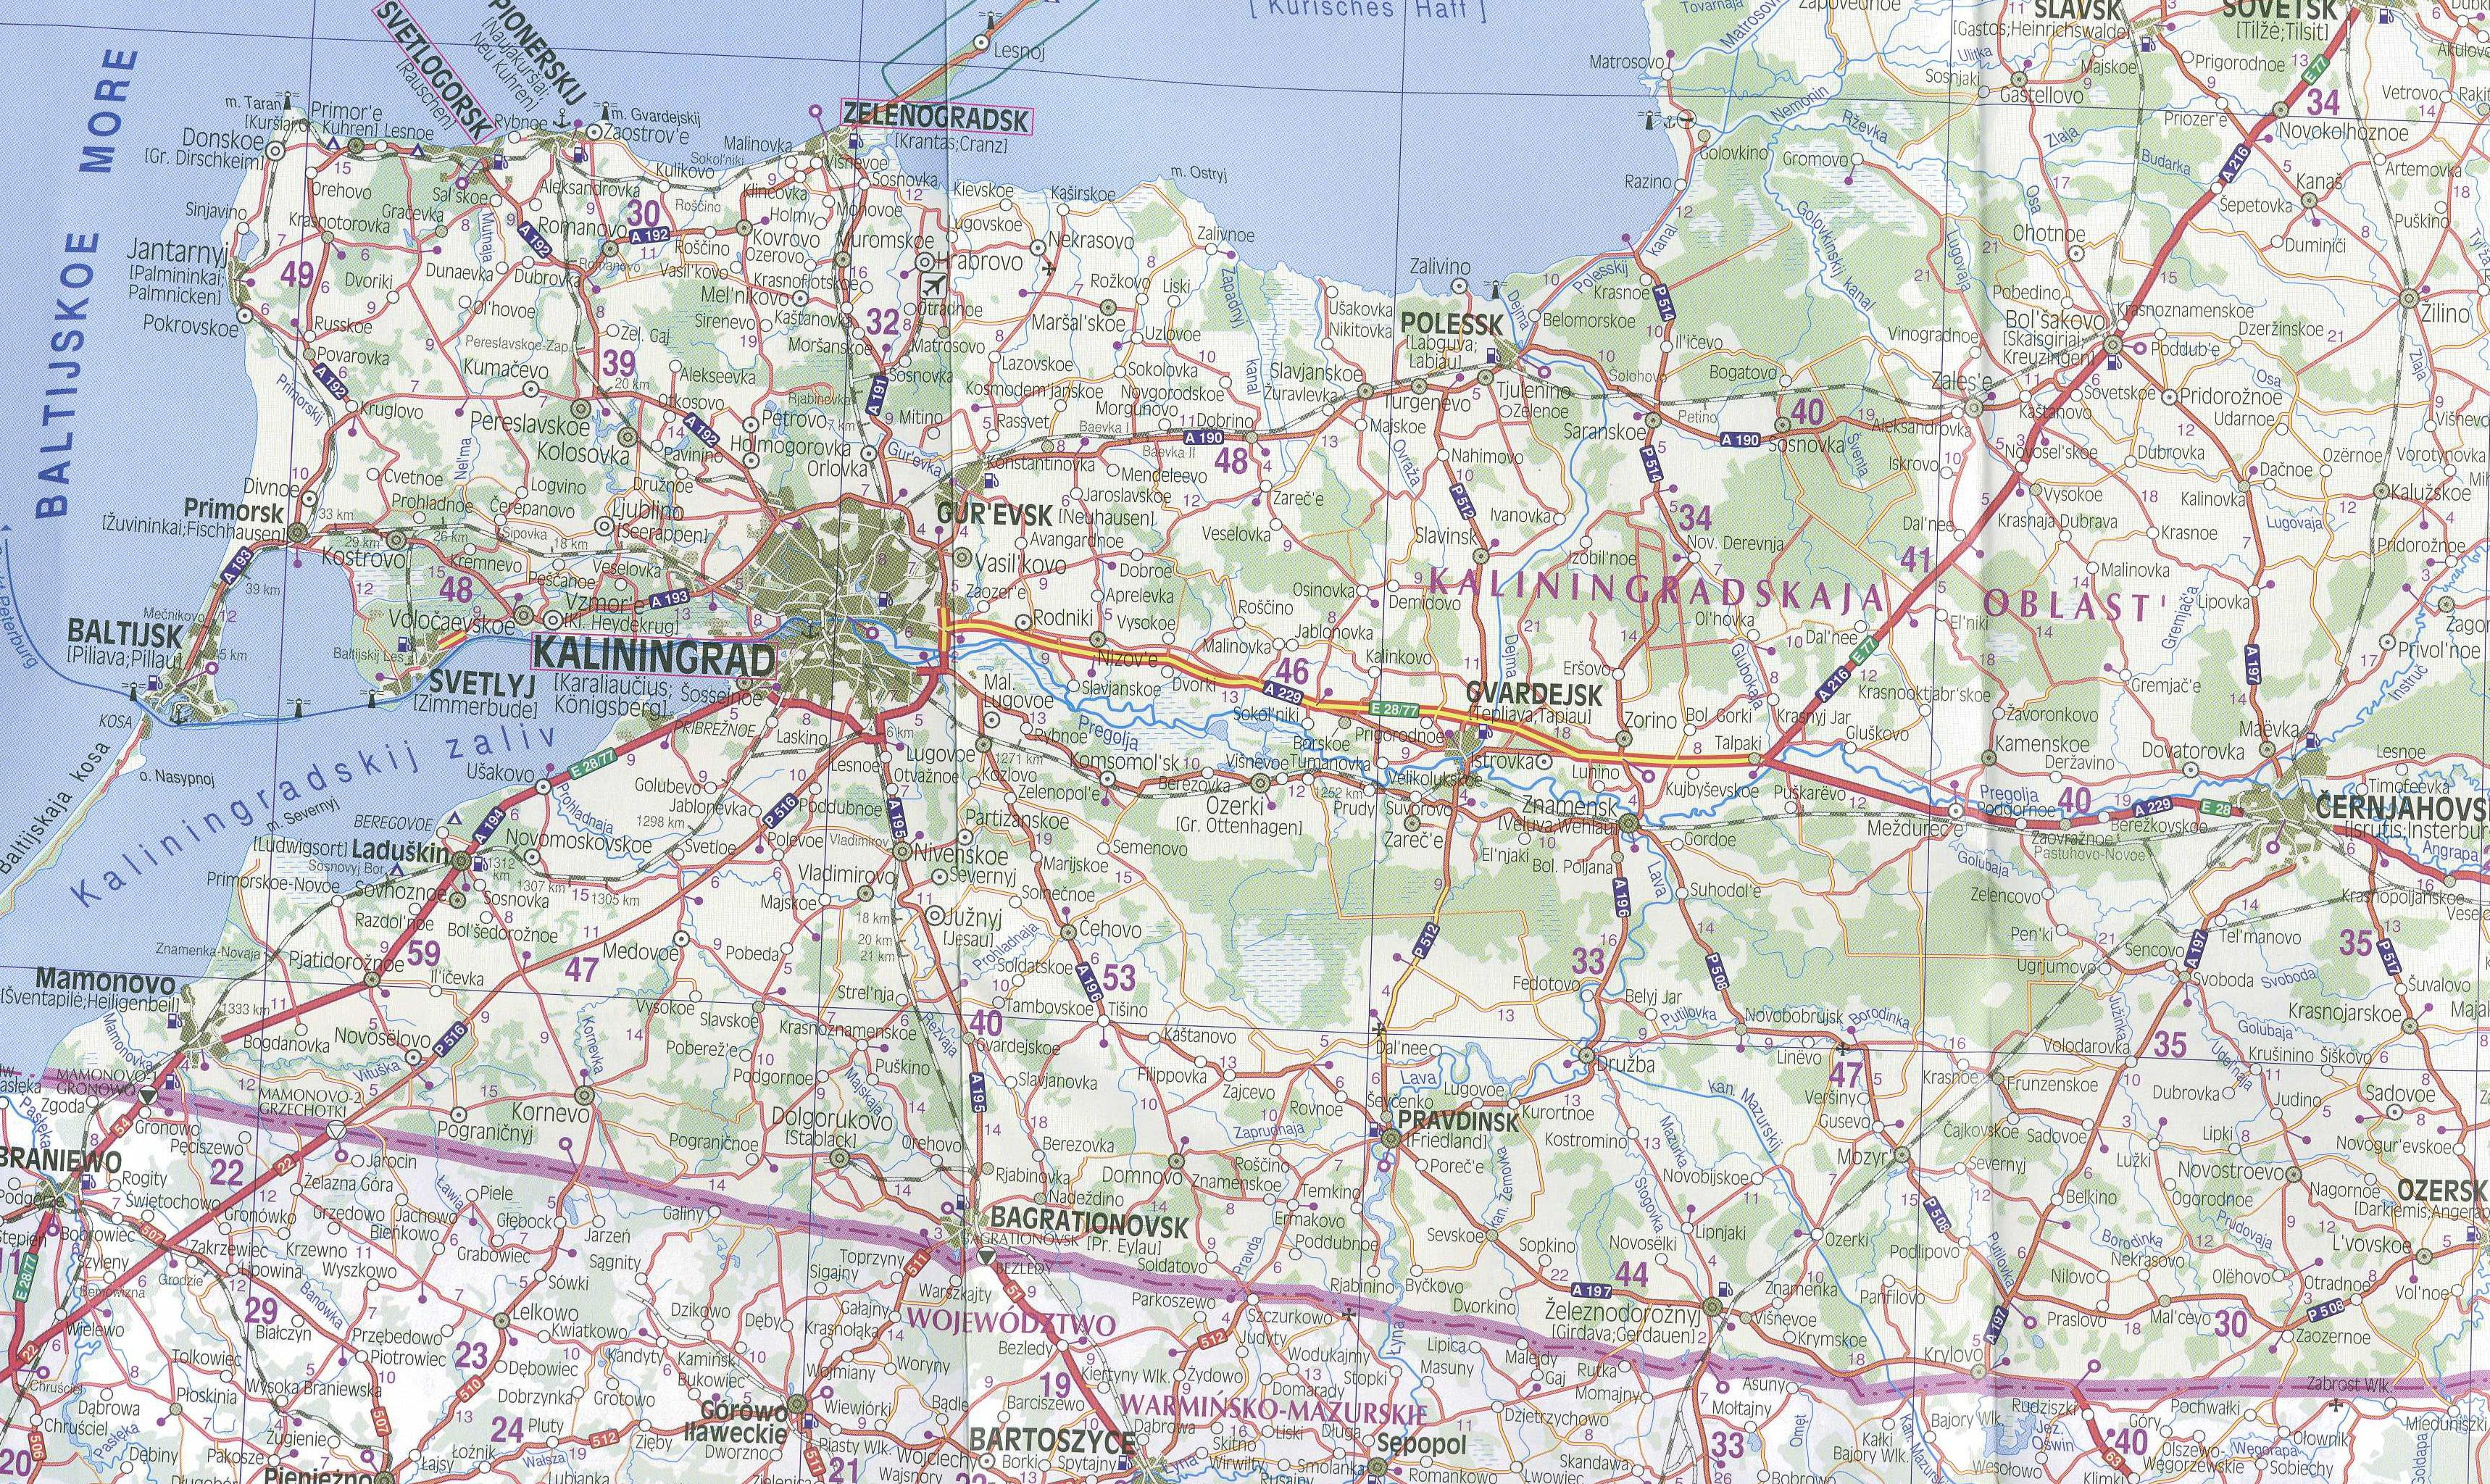 Map of Kaliningrad Region Kaliningrad Map on yamal peninsula map, nizhny novgorod map, kiev map, estonia map, crimean peninsula map, edinburgh map, konigsberg map, krasnodar map, east prussia, caspian sea map, corsica map, kuril islands map, russian plain map, rotterdam map, dagestan map, nizhny novgorod, siberia map, crimea map, aral sea map, kamchatka peninsula map, kazakhstan map, saint petersburg, balkan peninsula map,